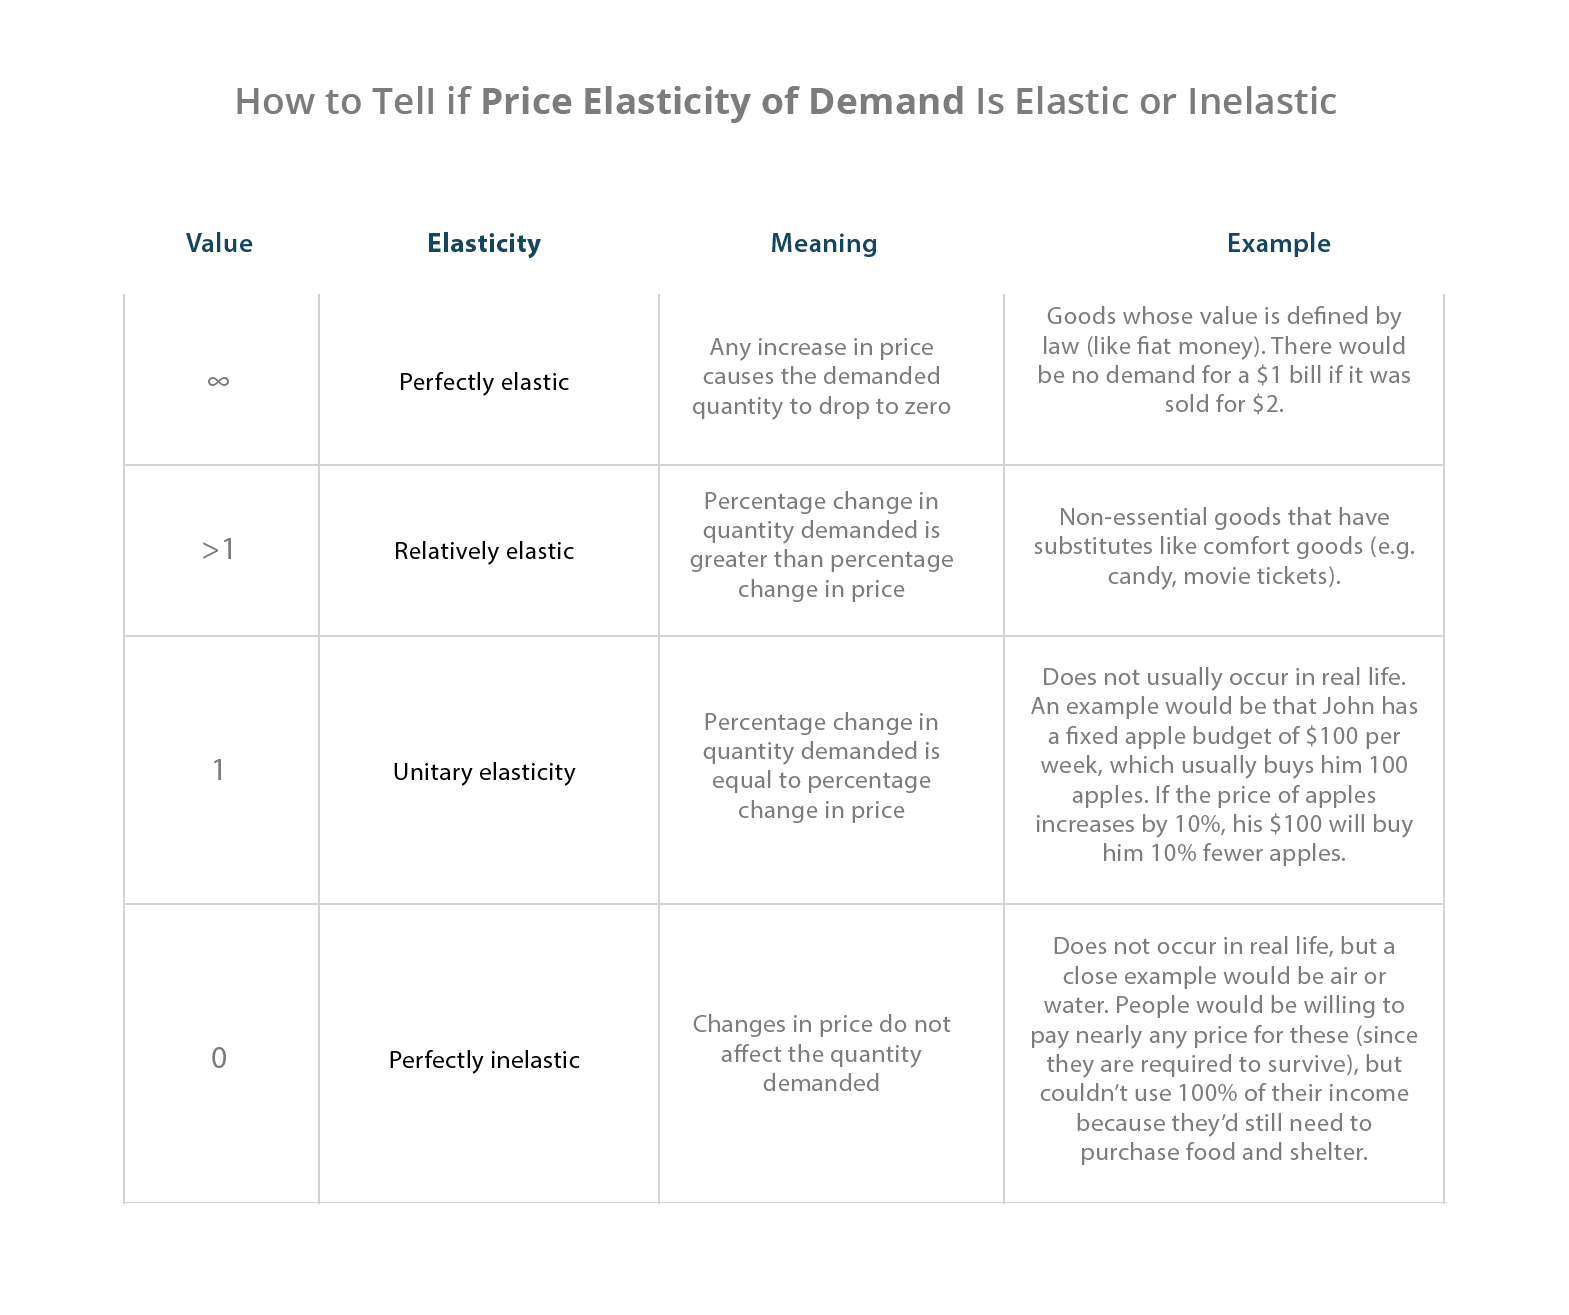 How to tel if price elasticity of demand is elastic or inelastic